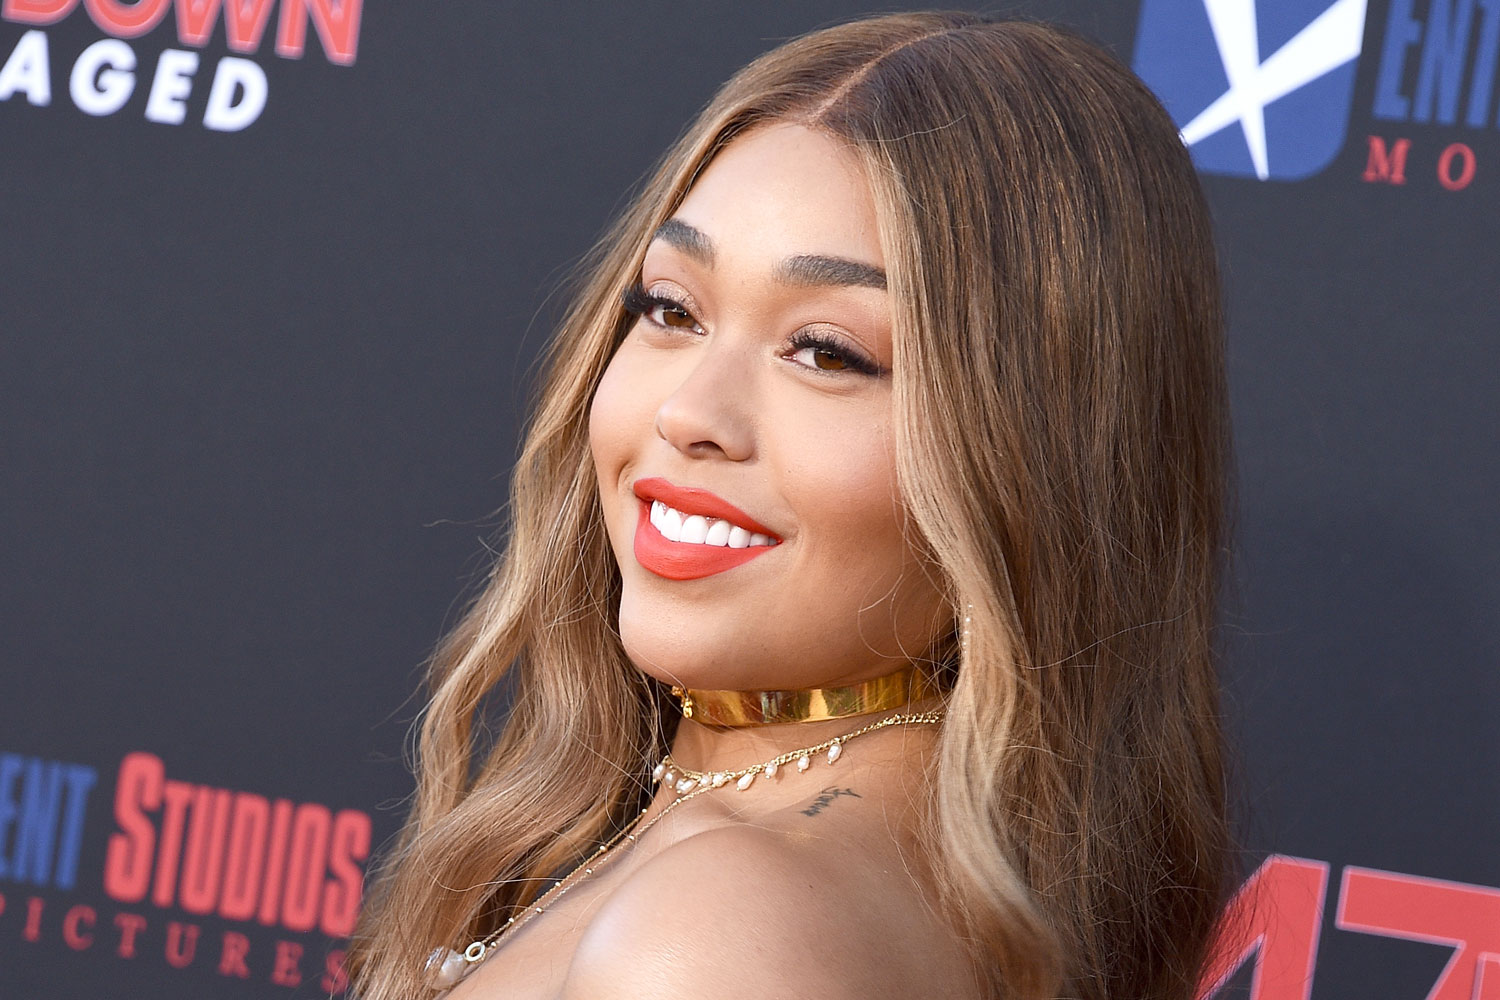 Jordyn Woods Shares A Photo Since She Was A Kind And Blows Fans' Minds: 'Little Jordy Looks Like Stormi Webster!'